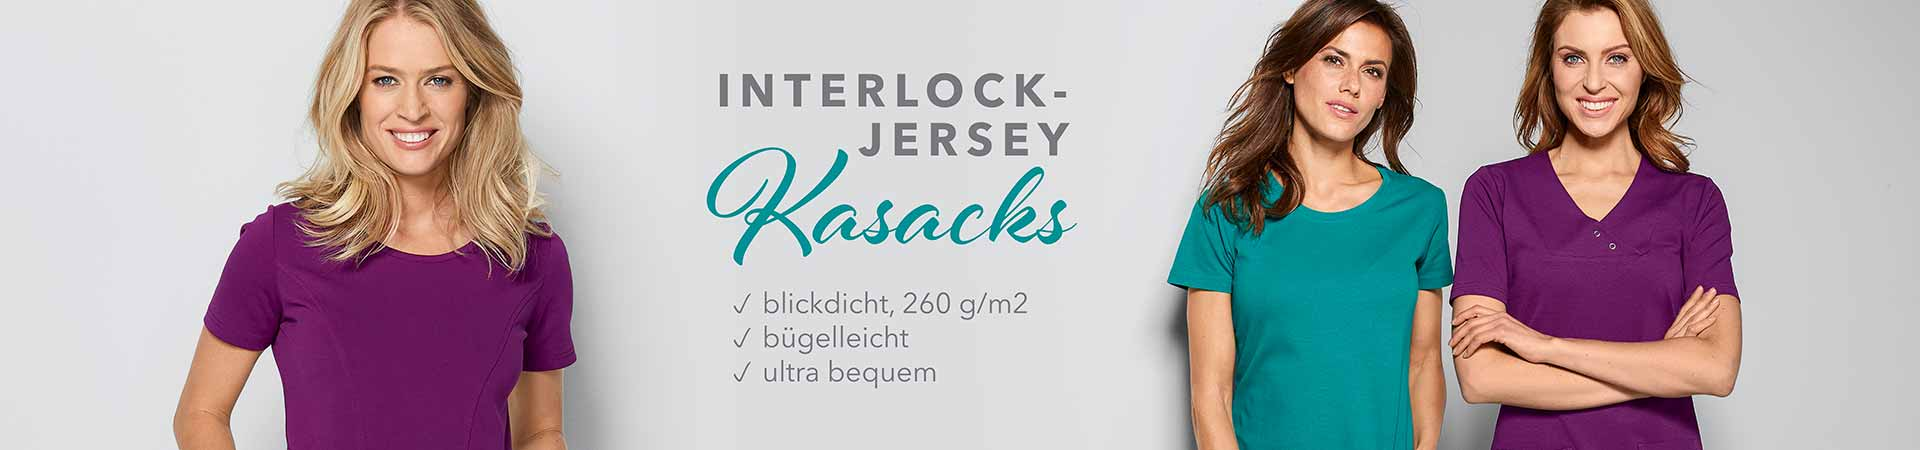 Interlock-Jersey-Kasacks